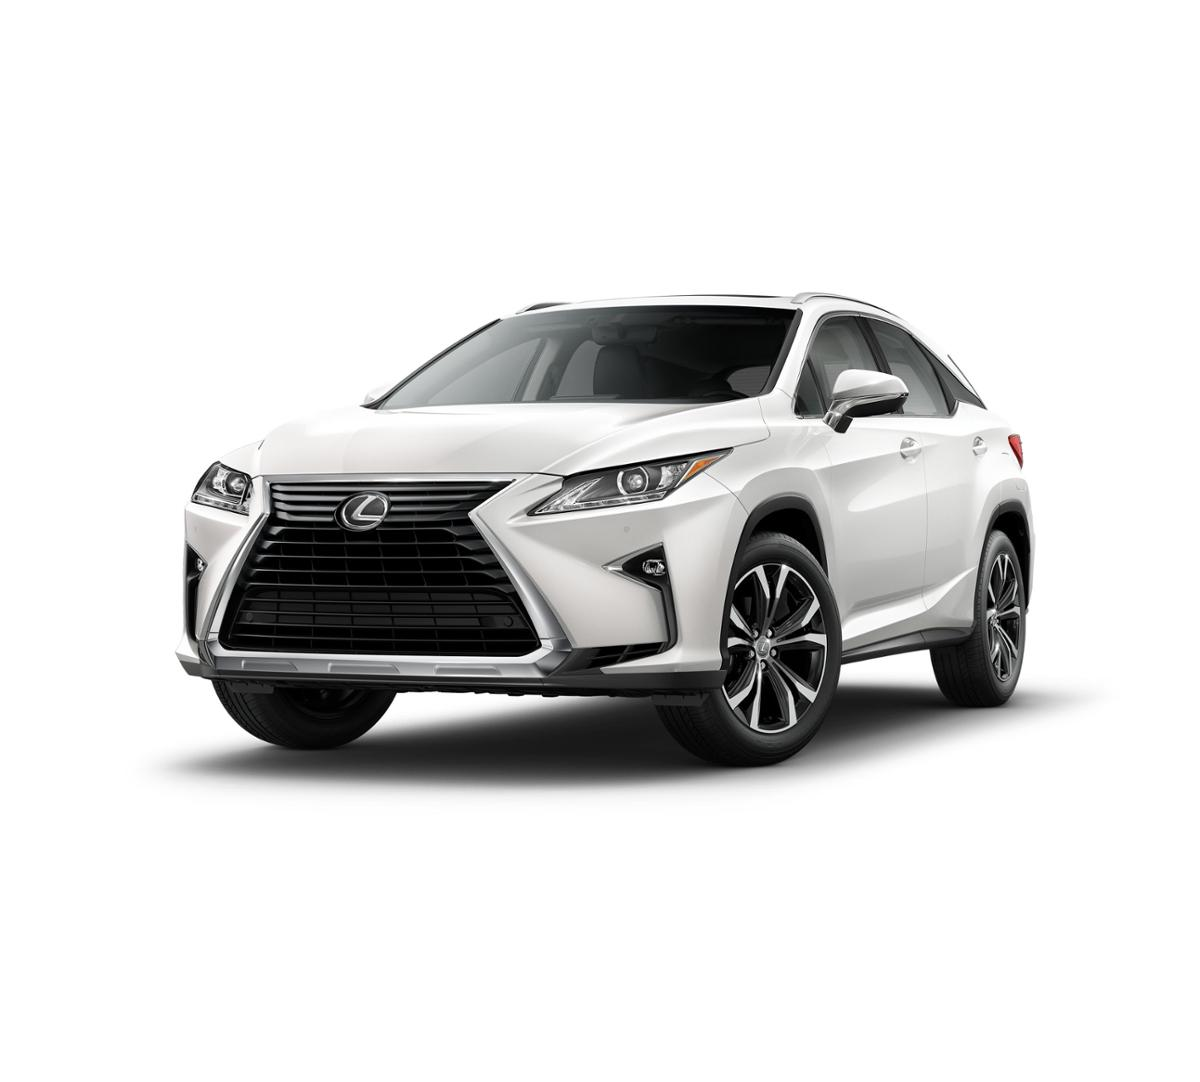 2017 lexus rx 350 for sale in tustin jtjbzmca5h2016914 tustin lexus. Black Bedroom Furniture Sets. Home Design Ideas